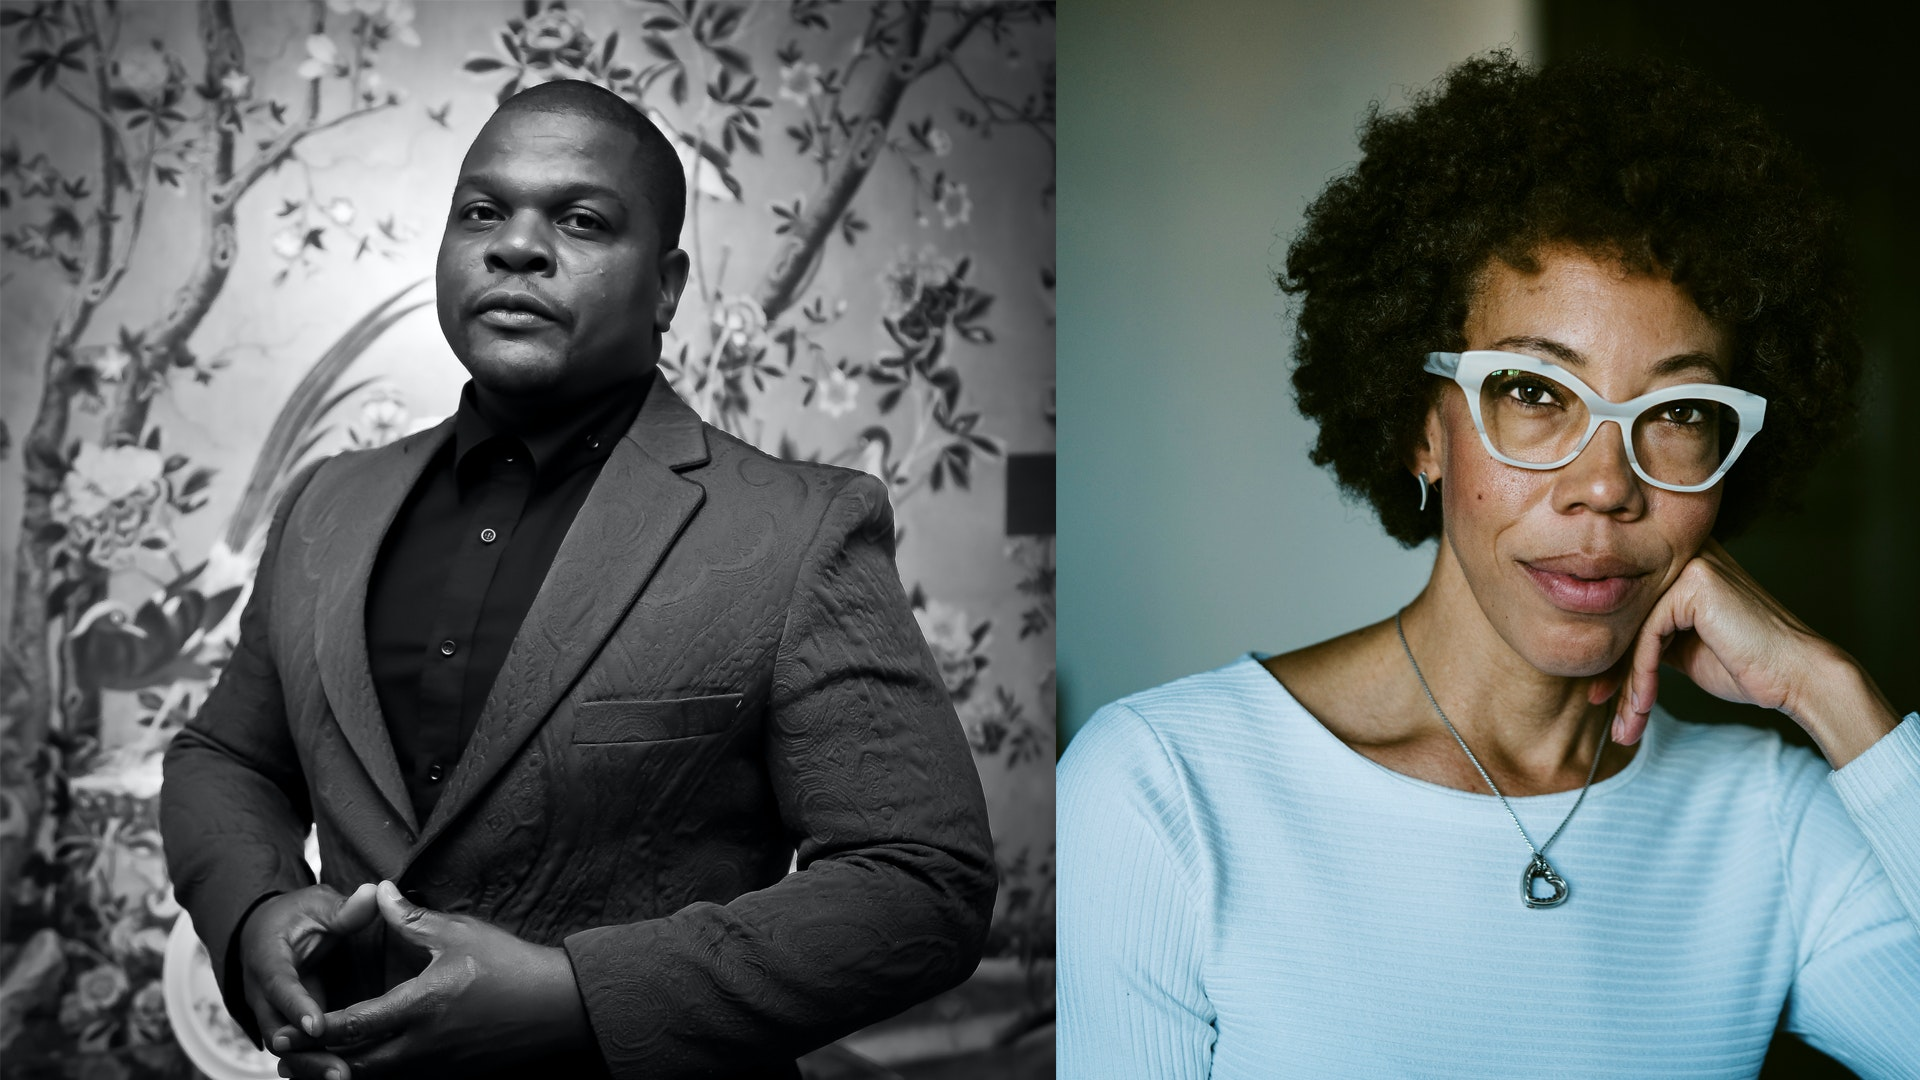 The Obamas' portrait artists of choice, Kehinde Wiley and Amy Sherald